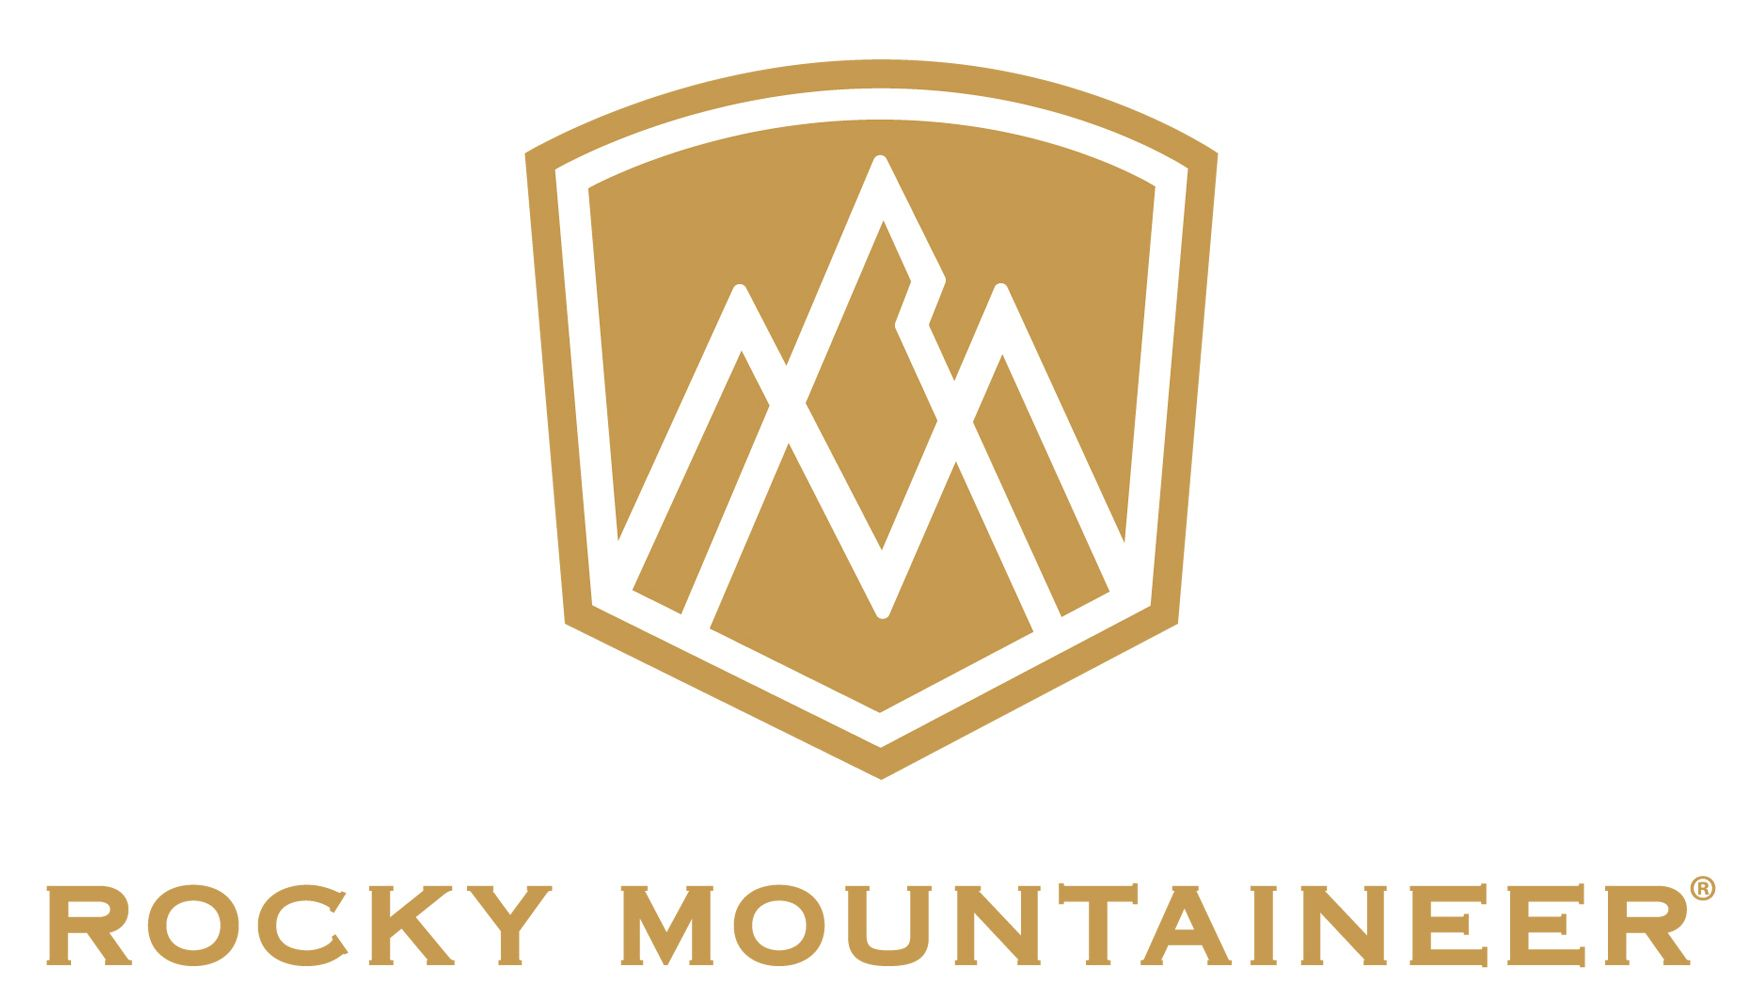 Image result for rocky mountaineer logo